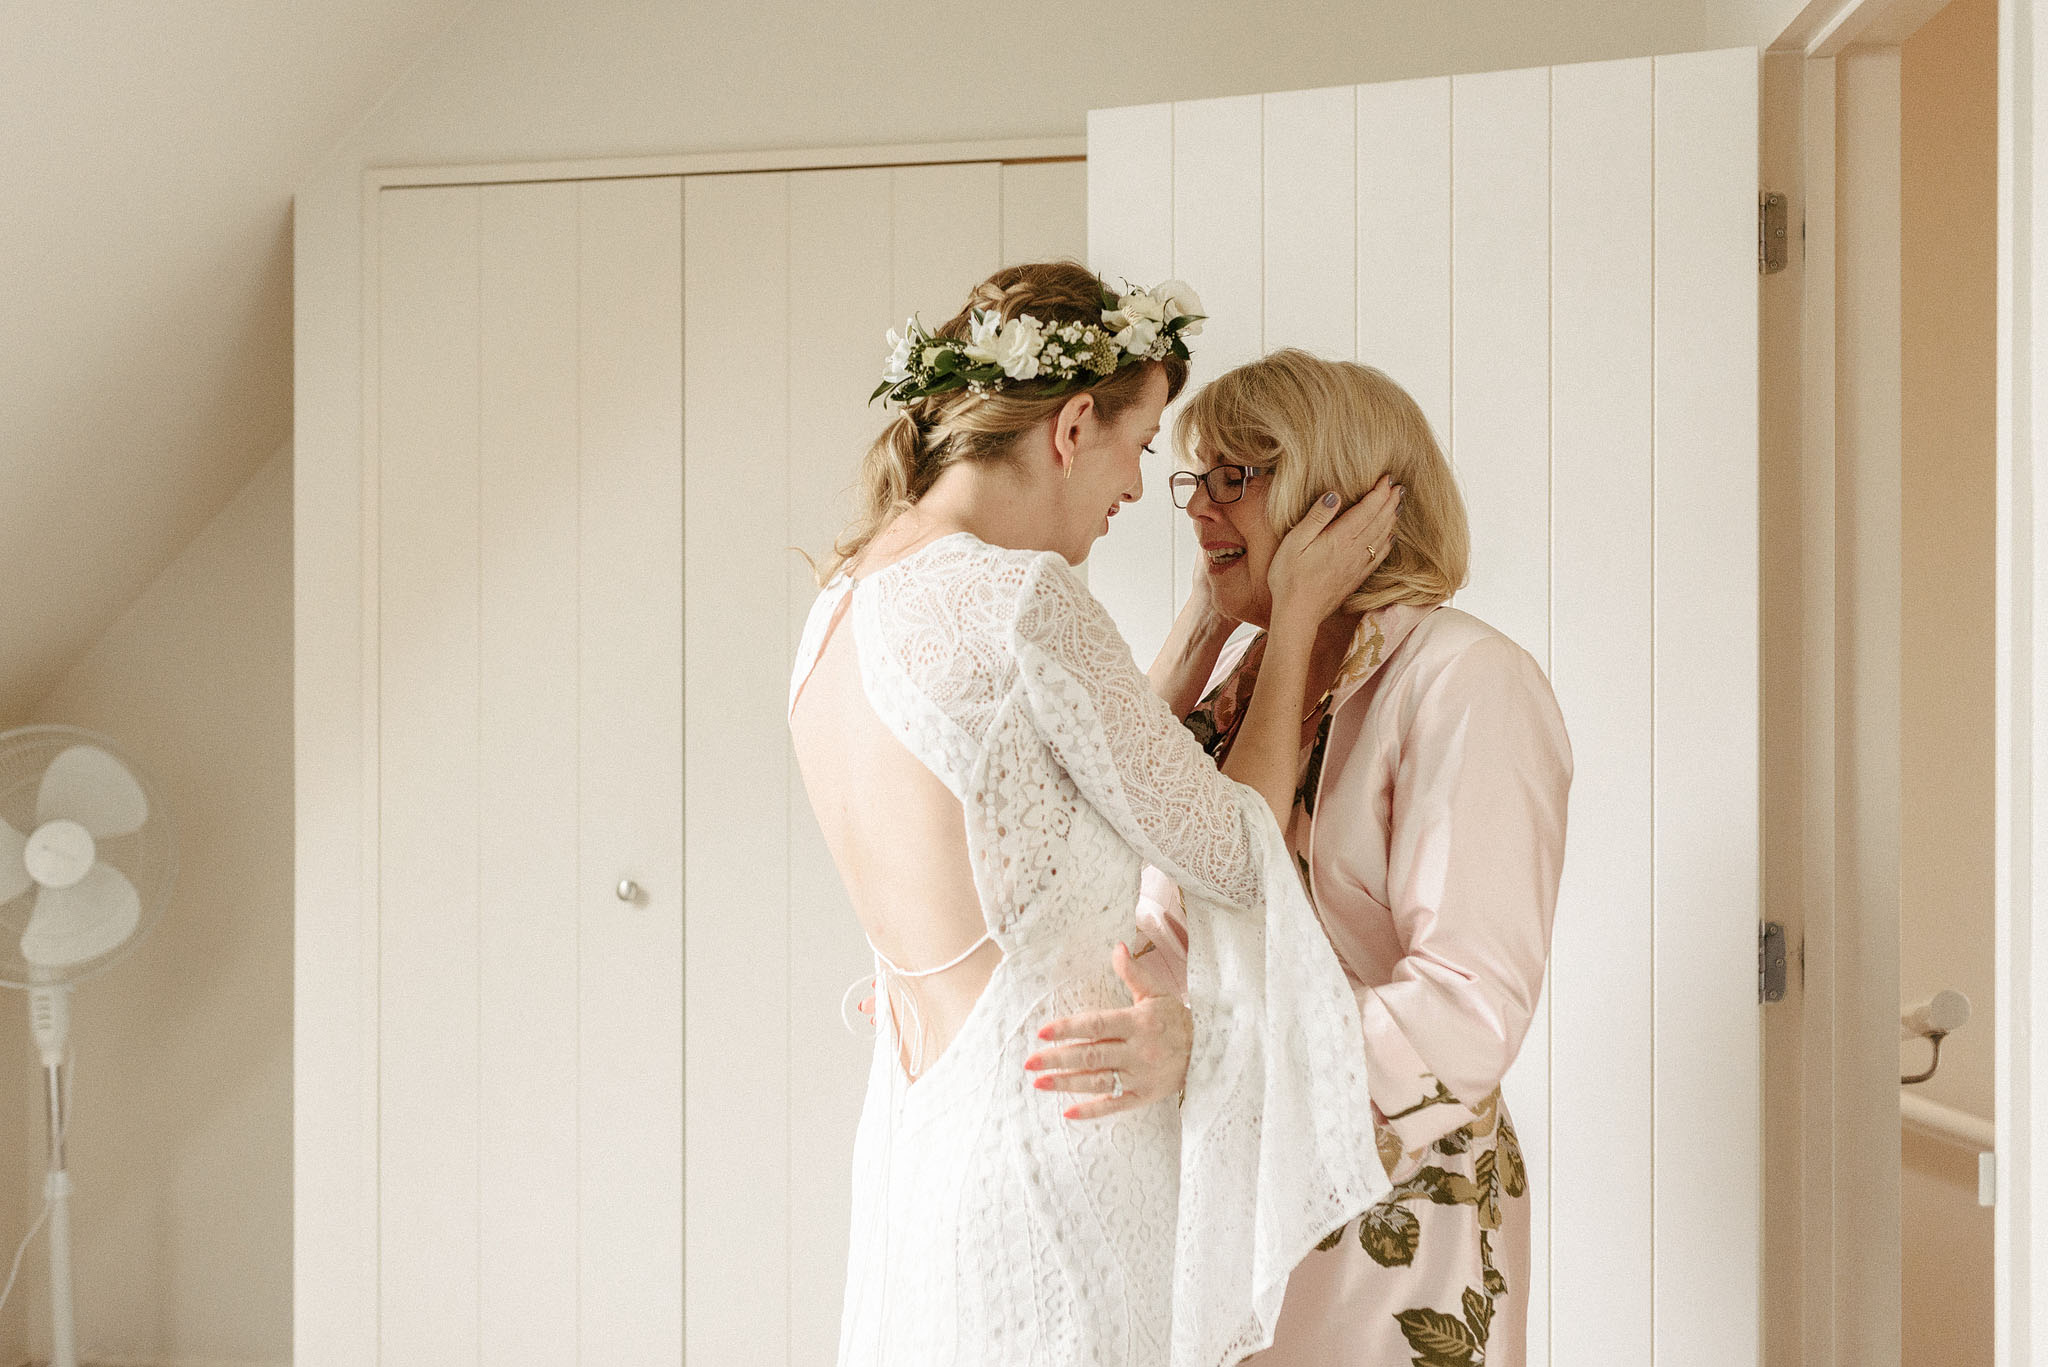 Mum and daughter on morning of daughter's wedding